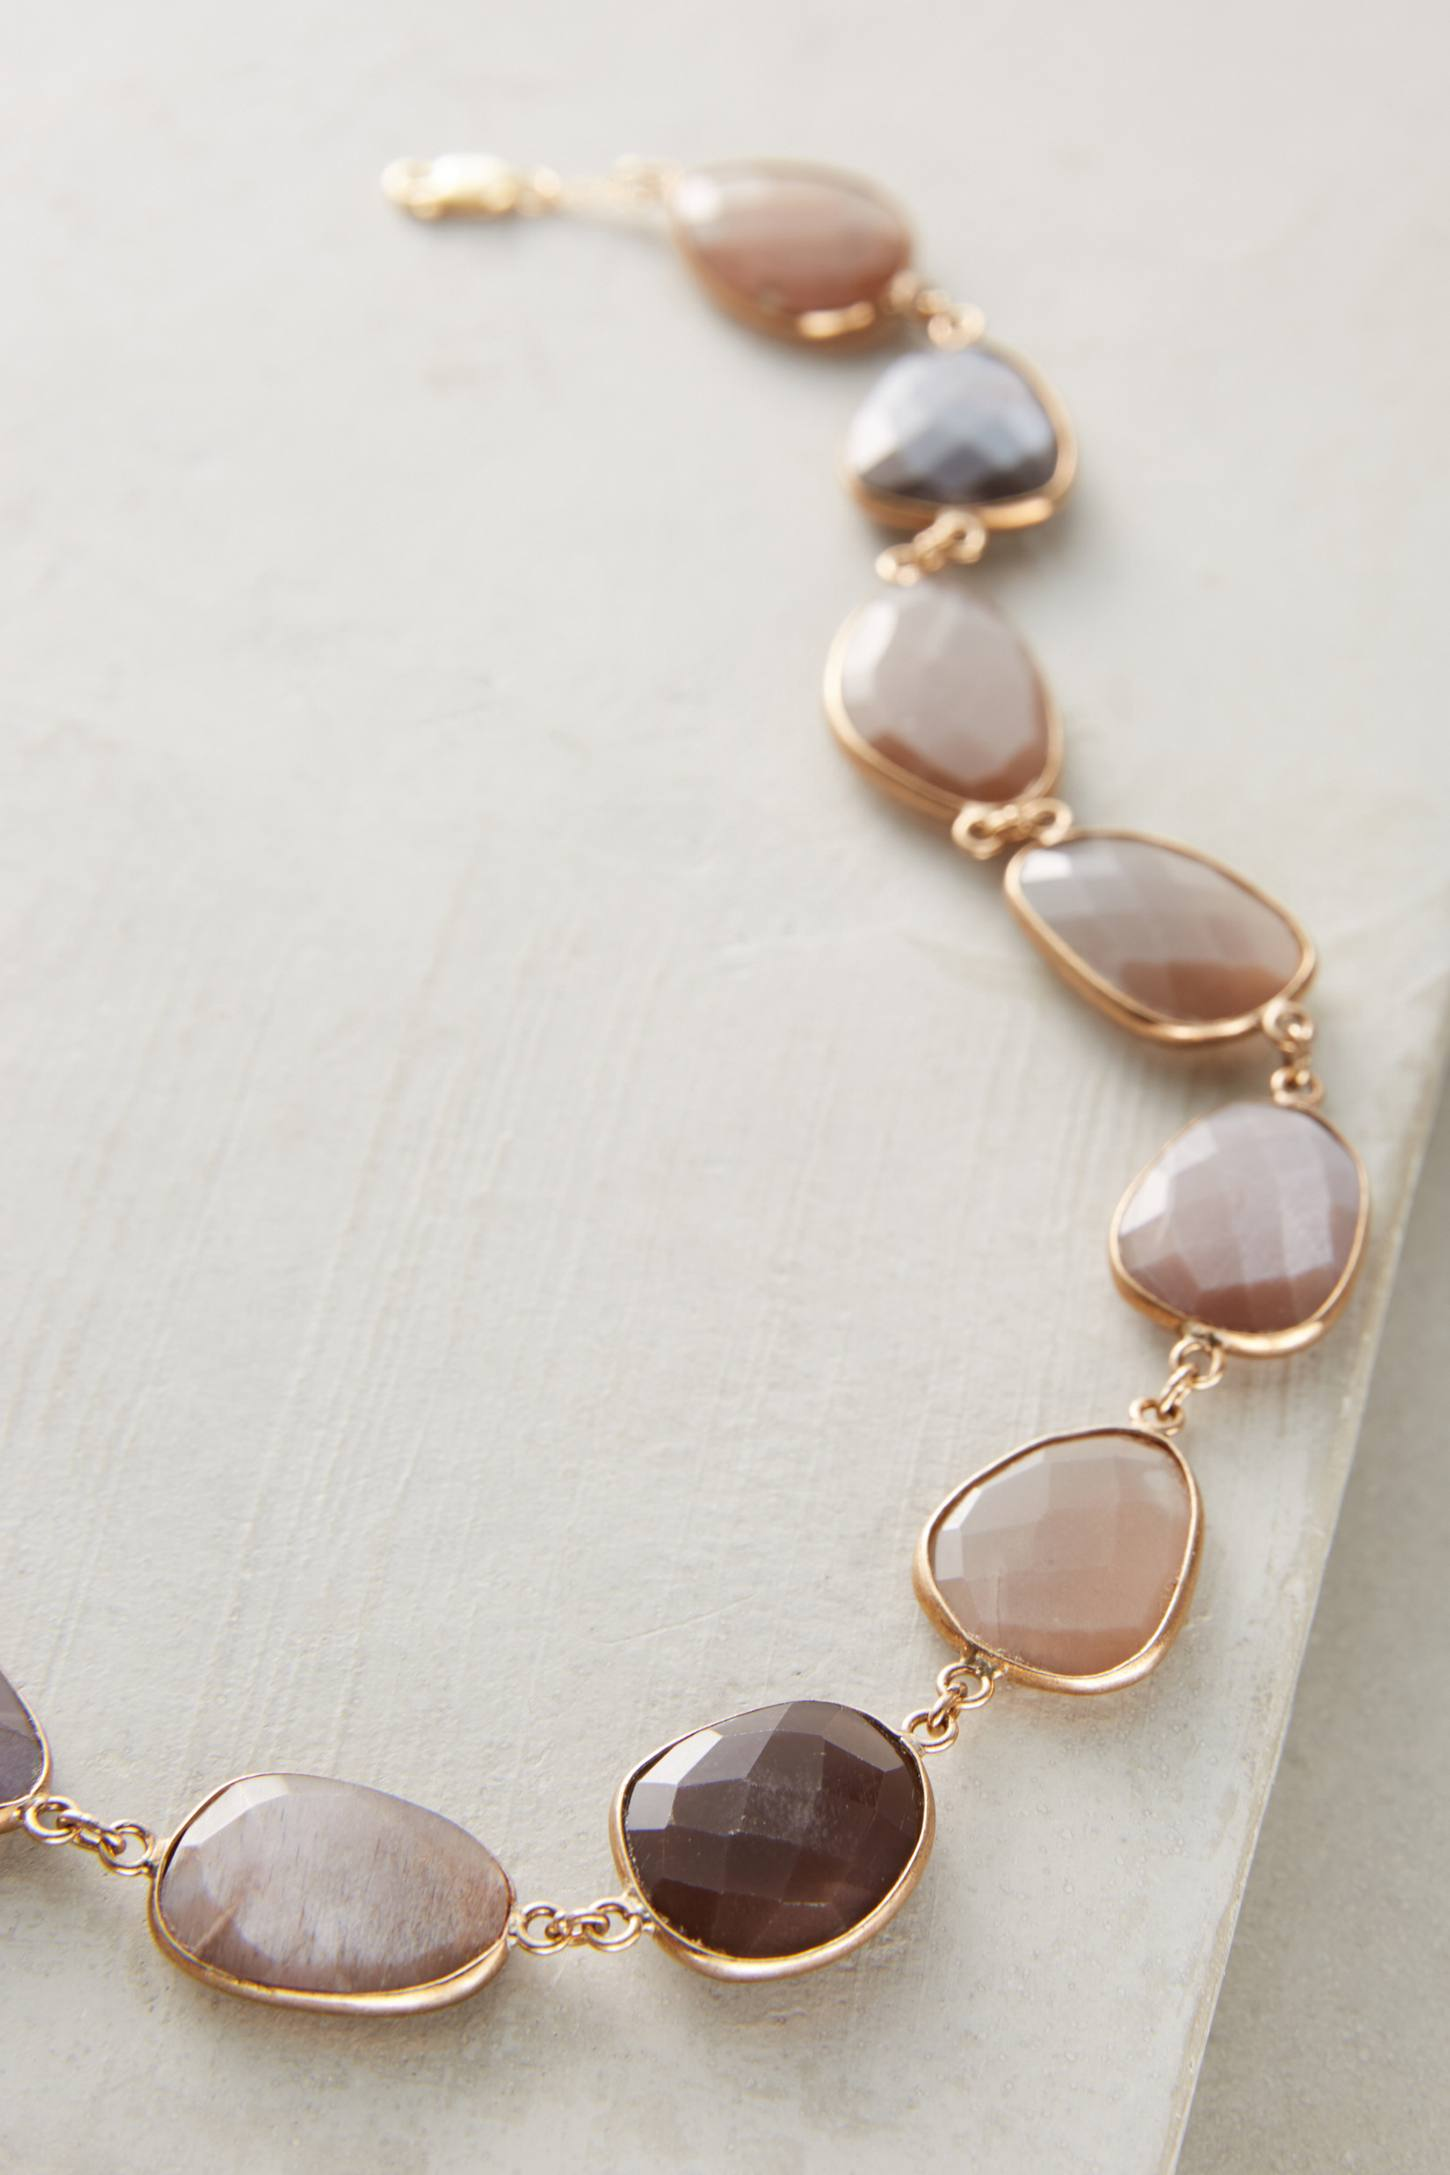 Slide View: 2: Moonstone Choker